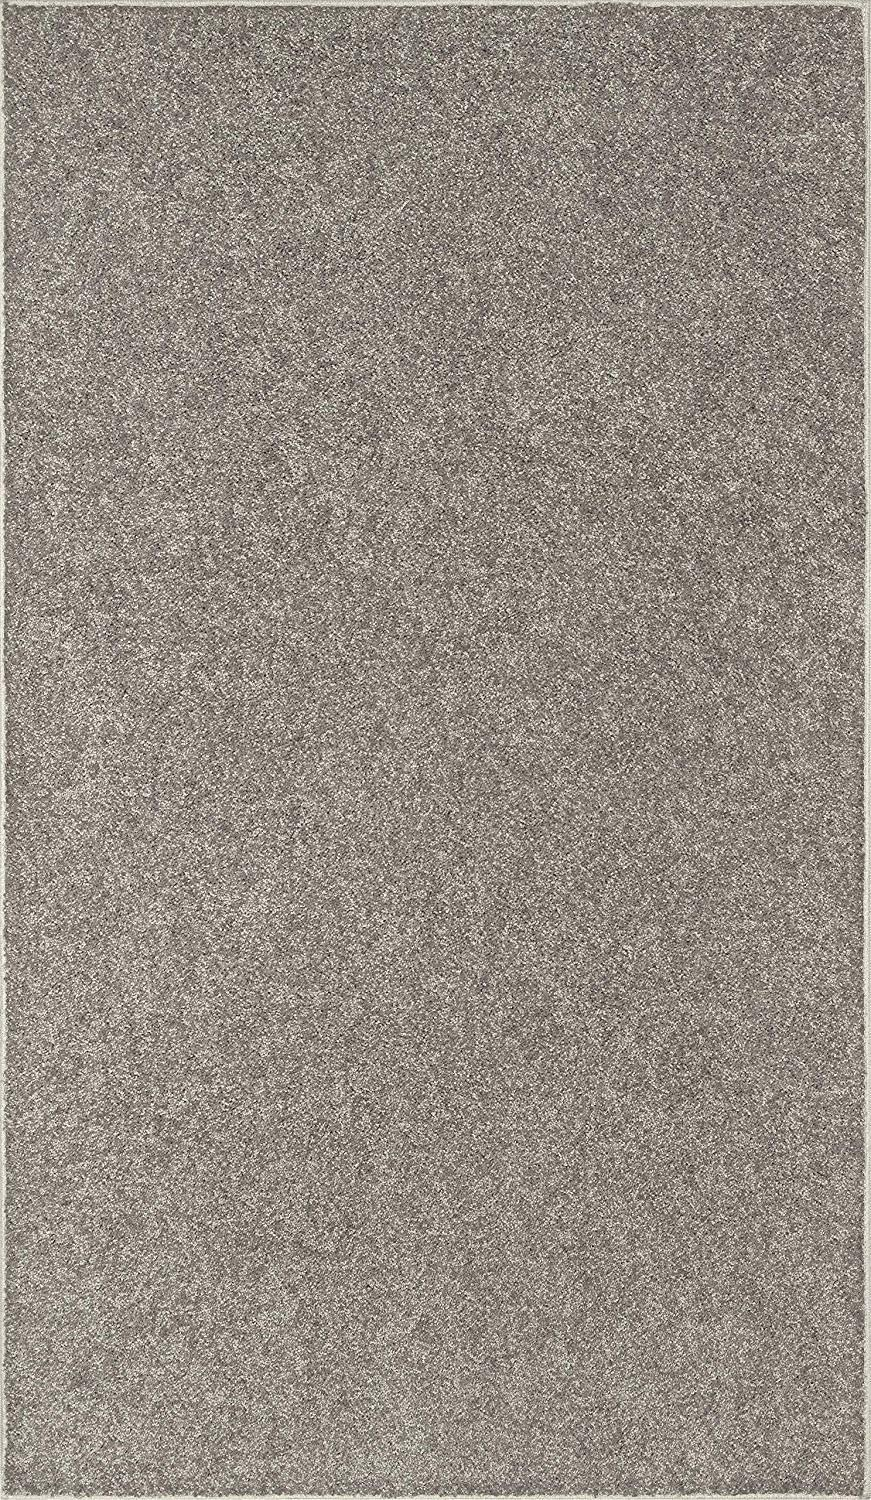 Solid Same day shipping Grey Color Oversize 9'x15' Rug Area Surprise price